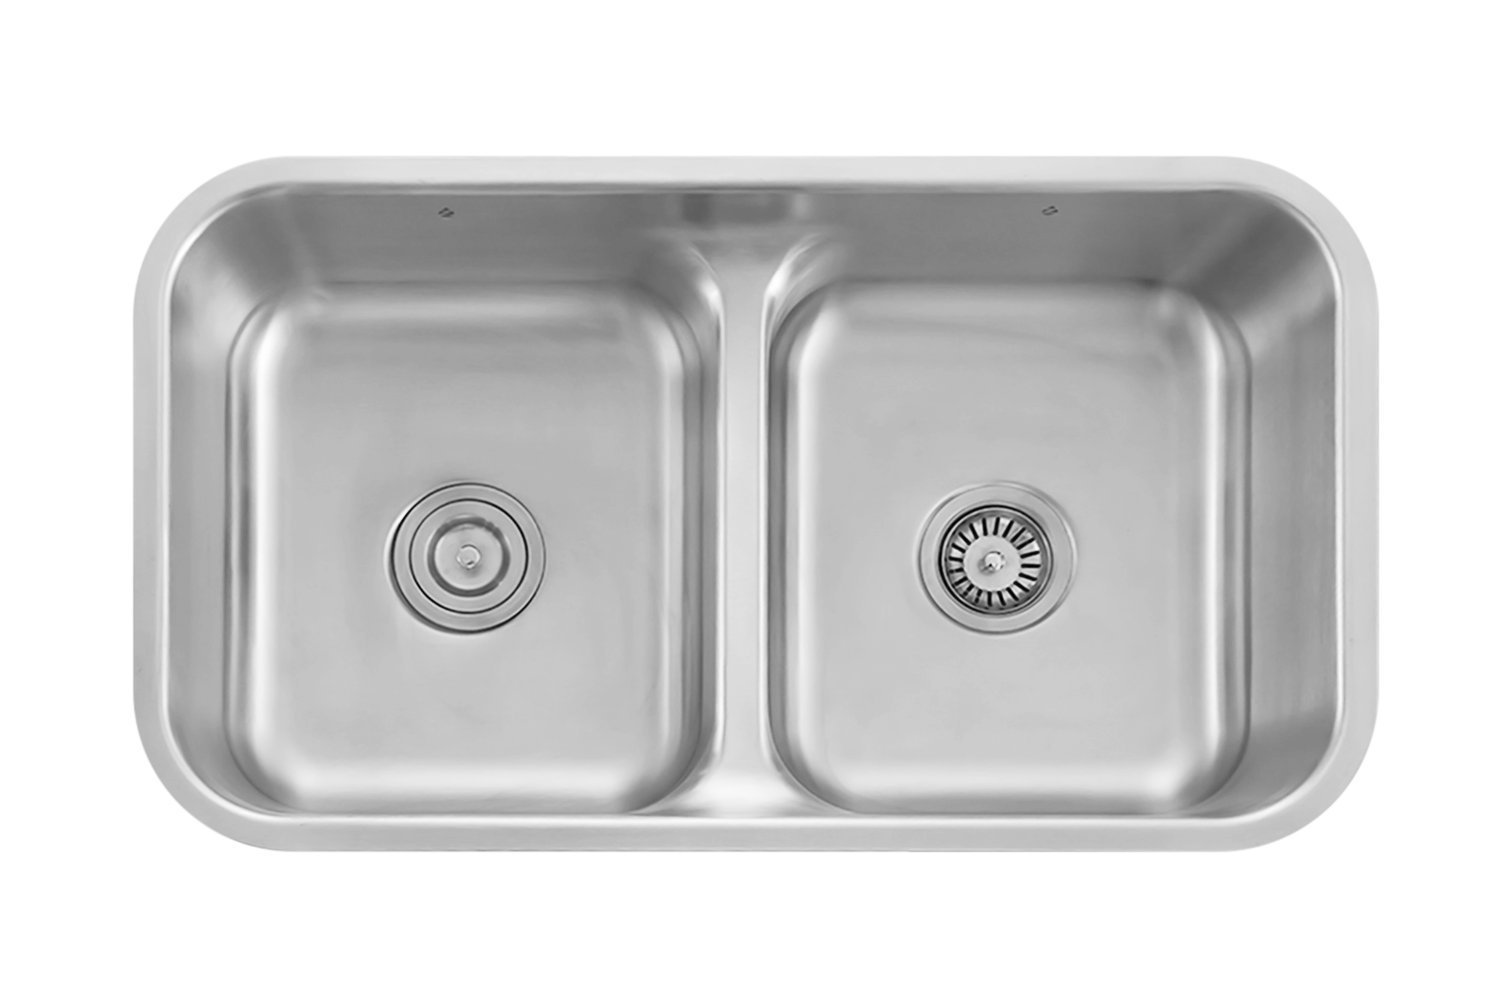 Z Sinks Pavia32 Z Series Stainless Steel Kitchen Double Sink, Undermount 50/50 Low Divide Double Bowl With Strainers